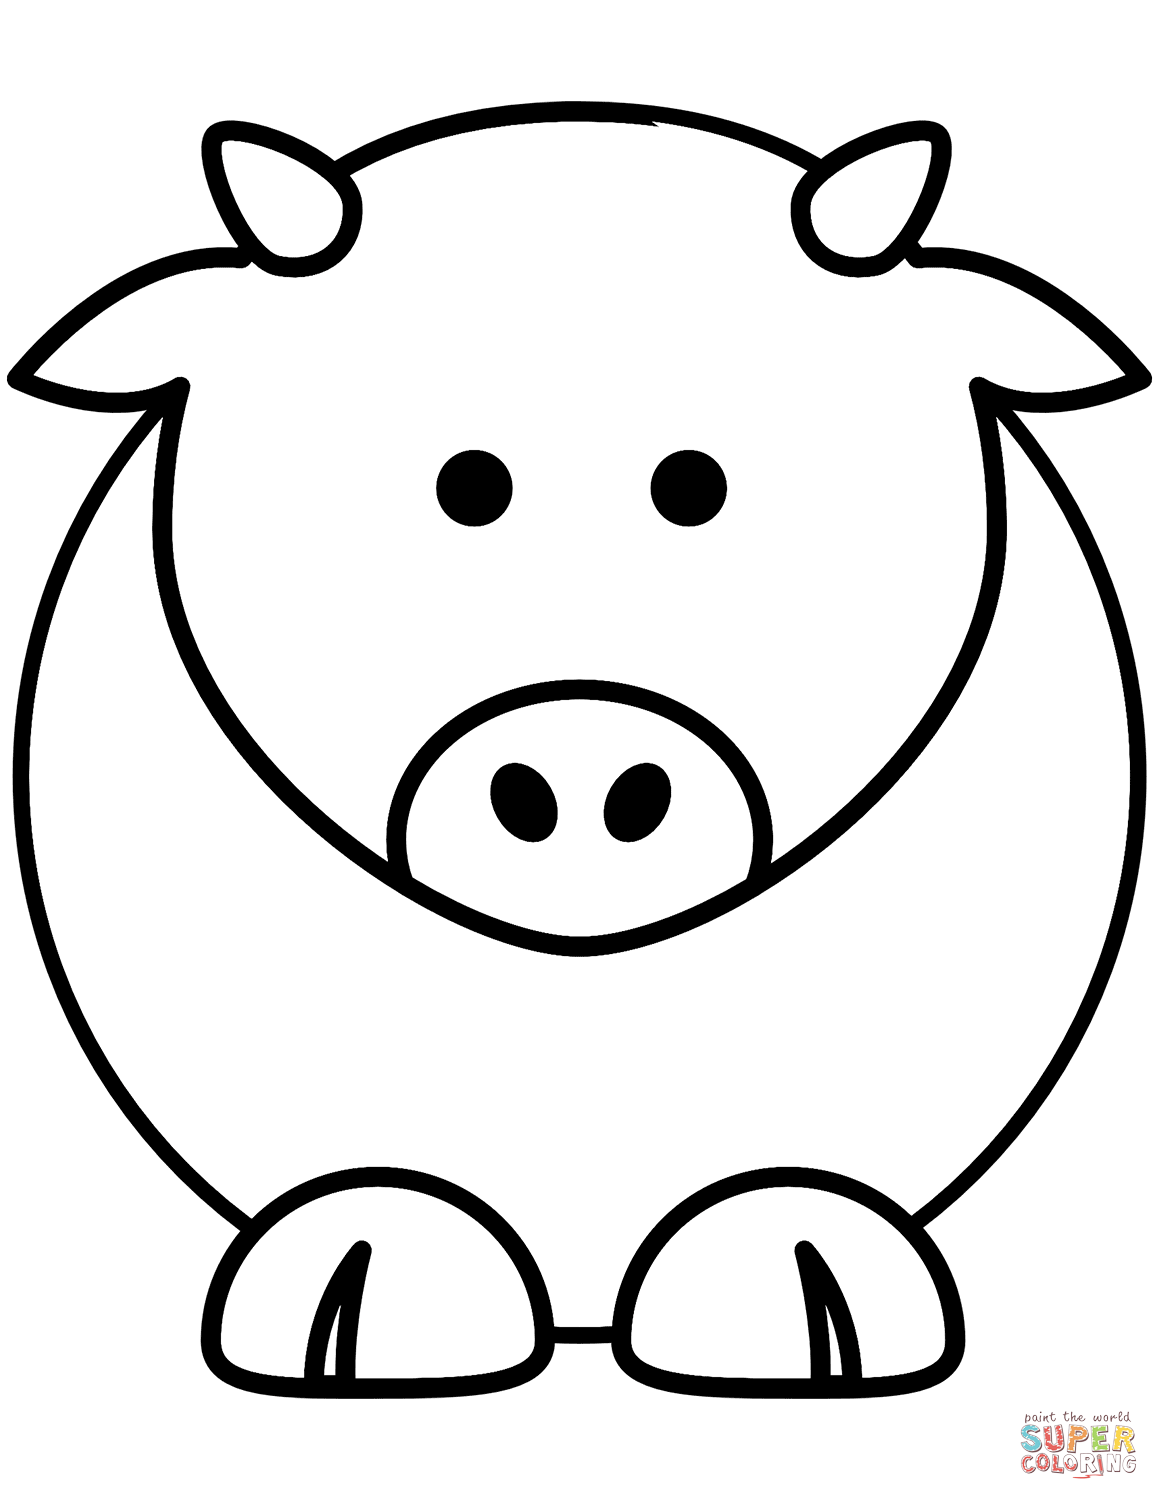 picture of a cow to colour free printable cow coloring pages for kids cool2bkids colour picture to a cow of